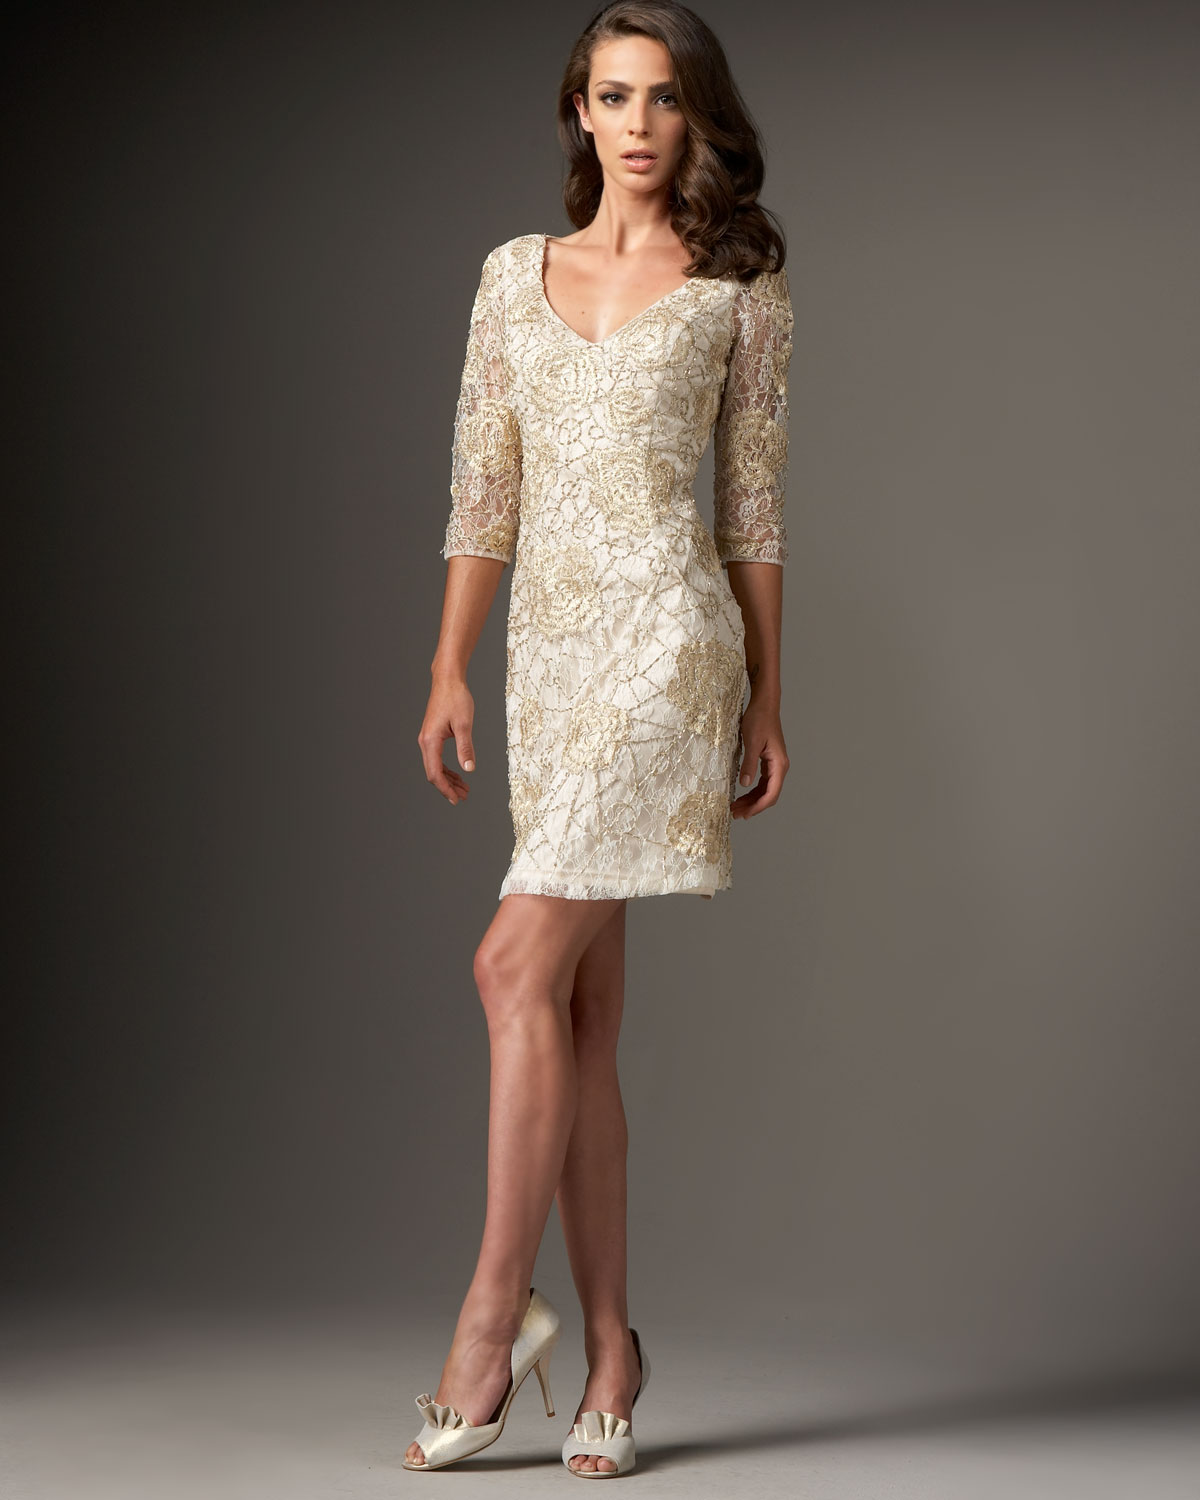 Sue wong Floral-lace Cocktail Dress in Natural | Lyst